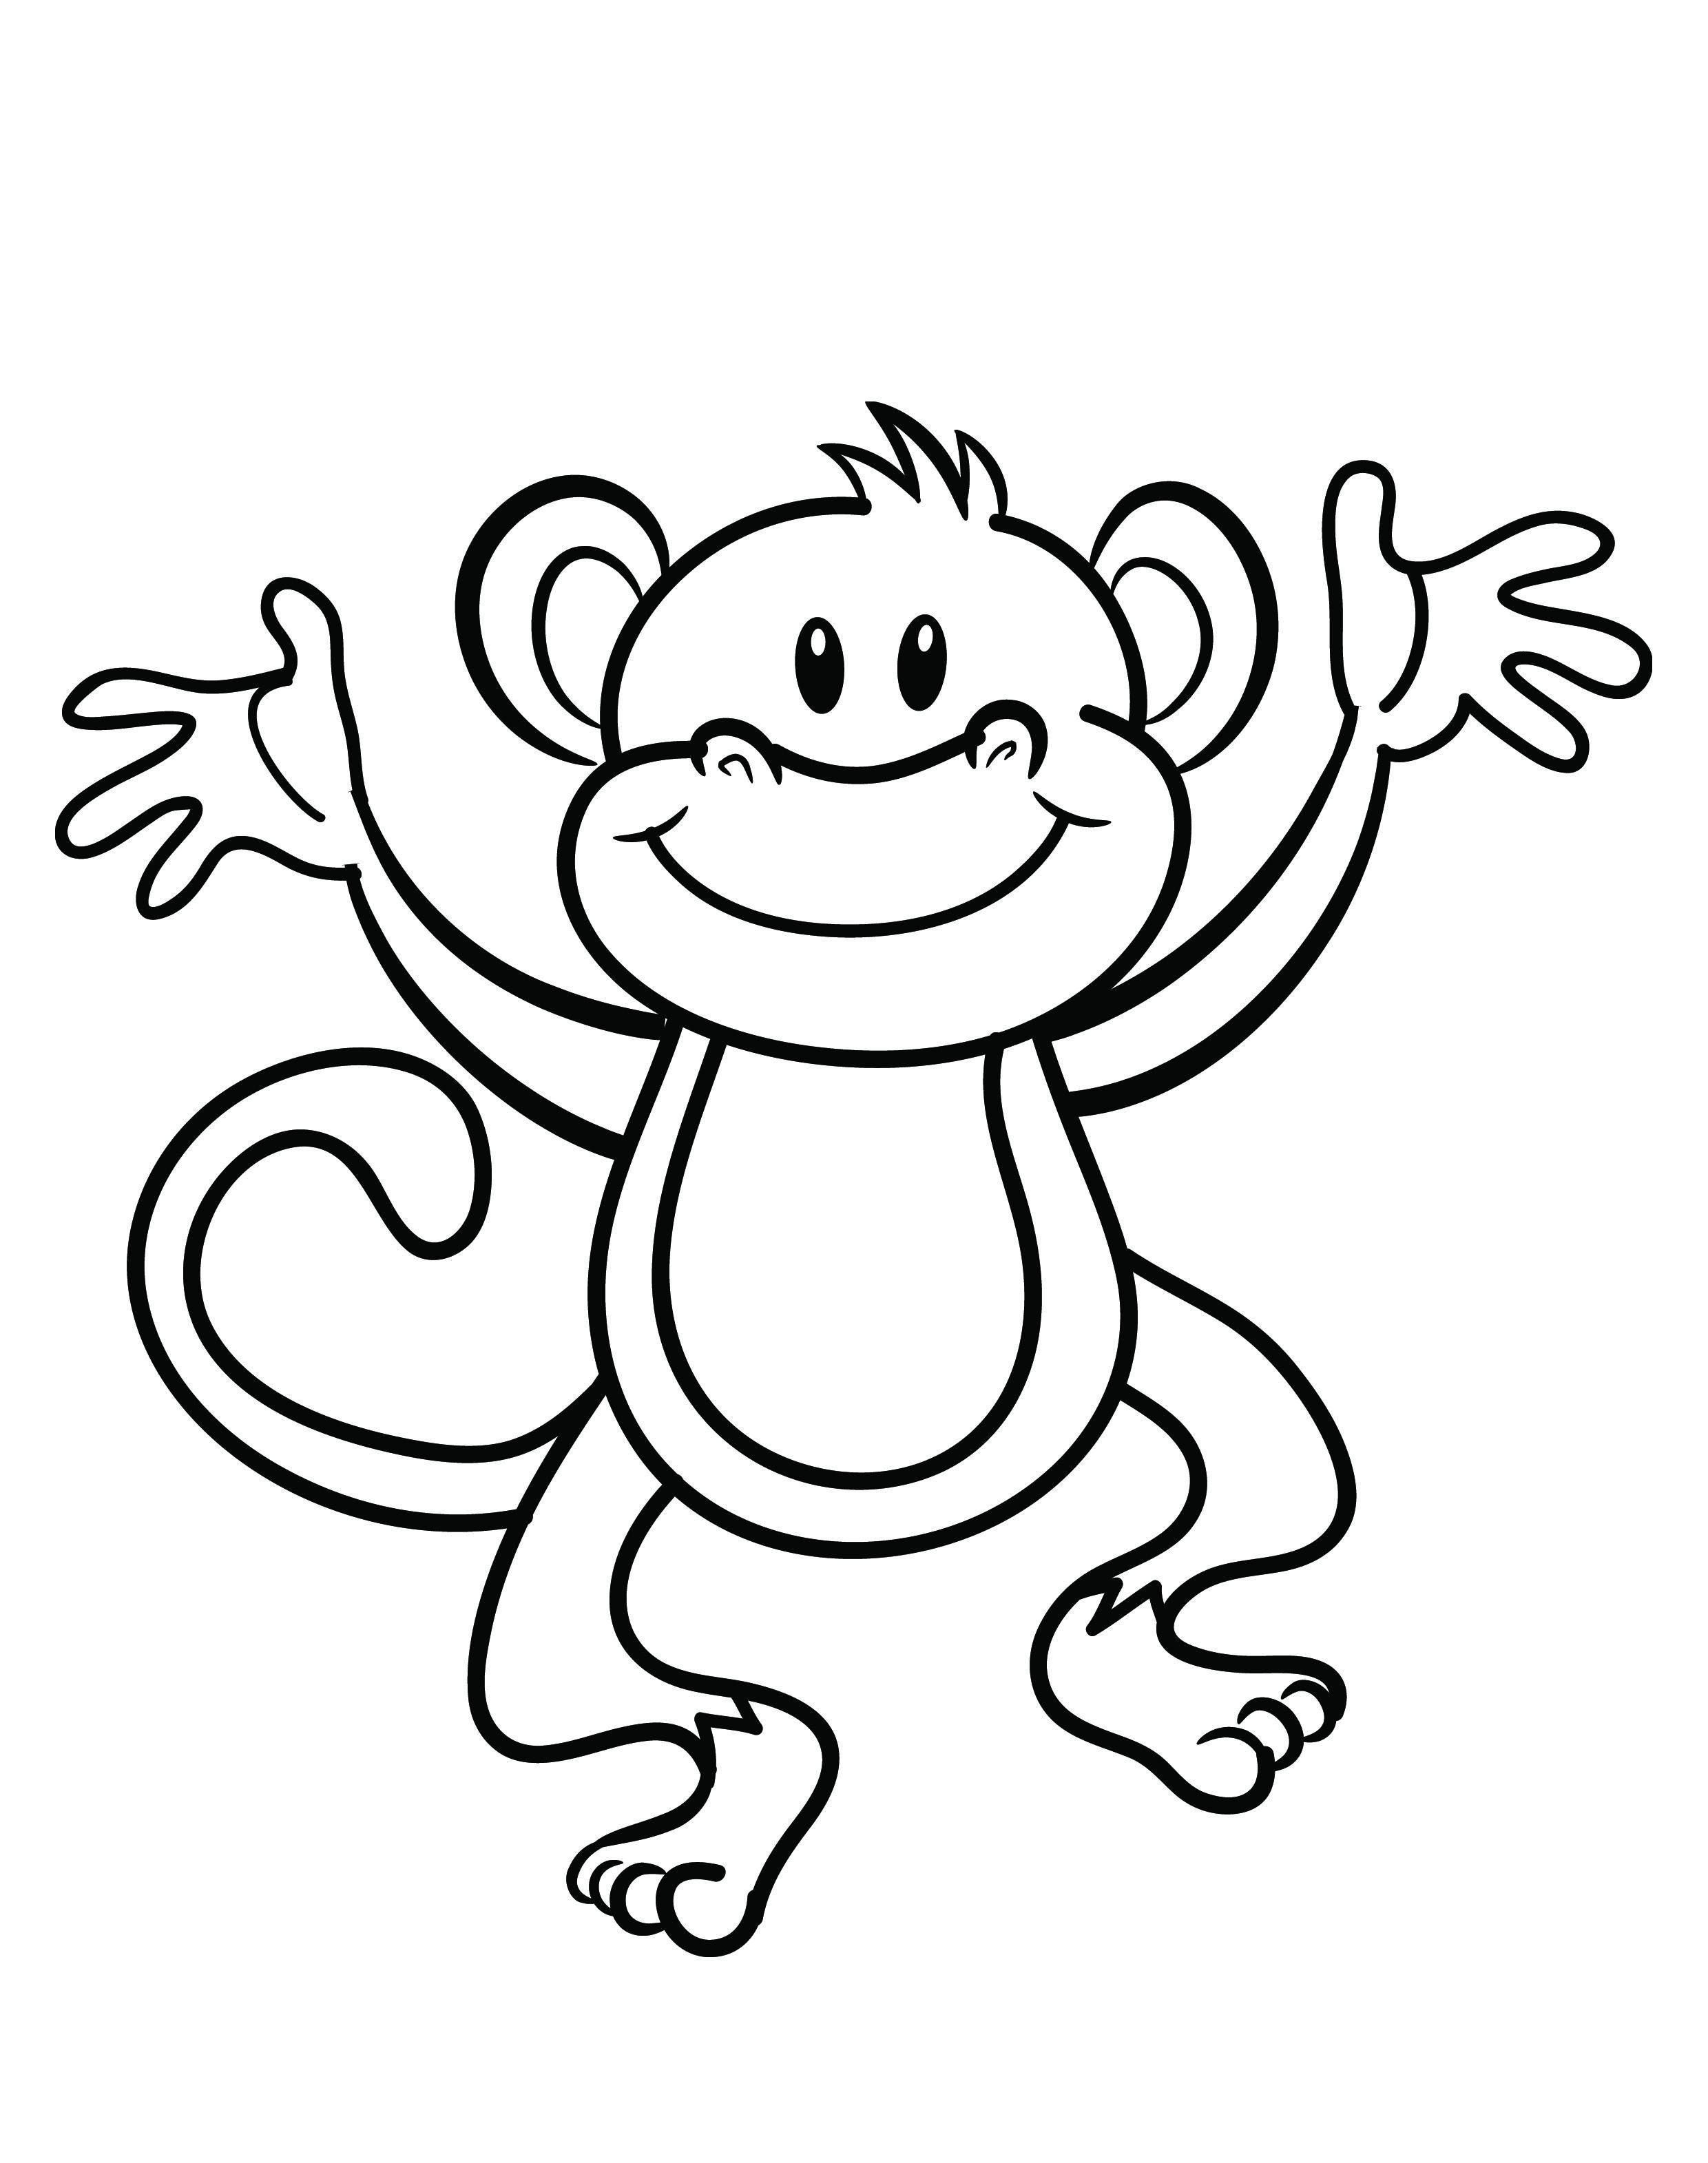 Attrayant Free Printable Monkey Coloring Page